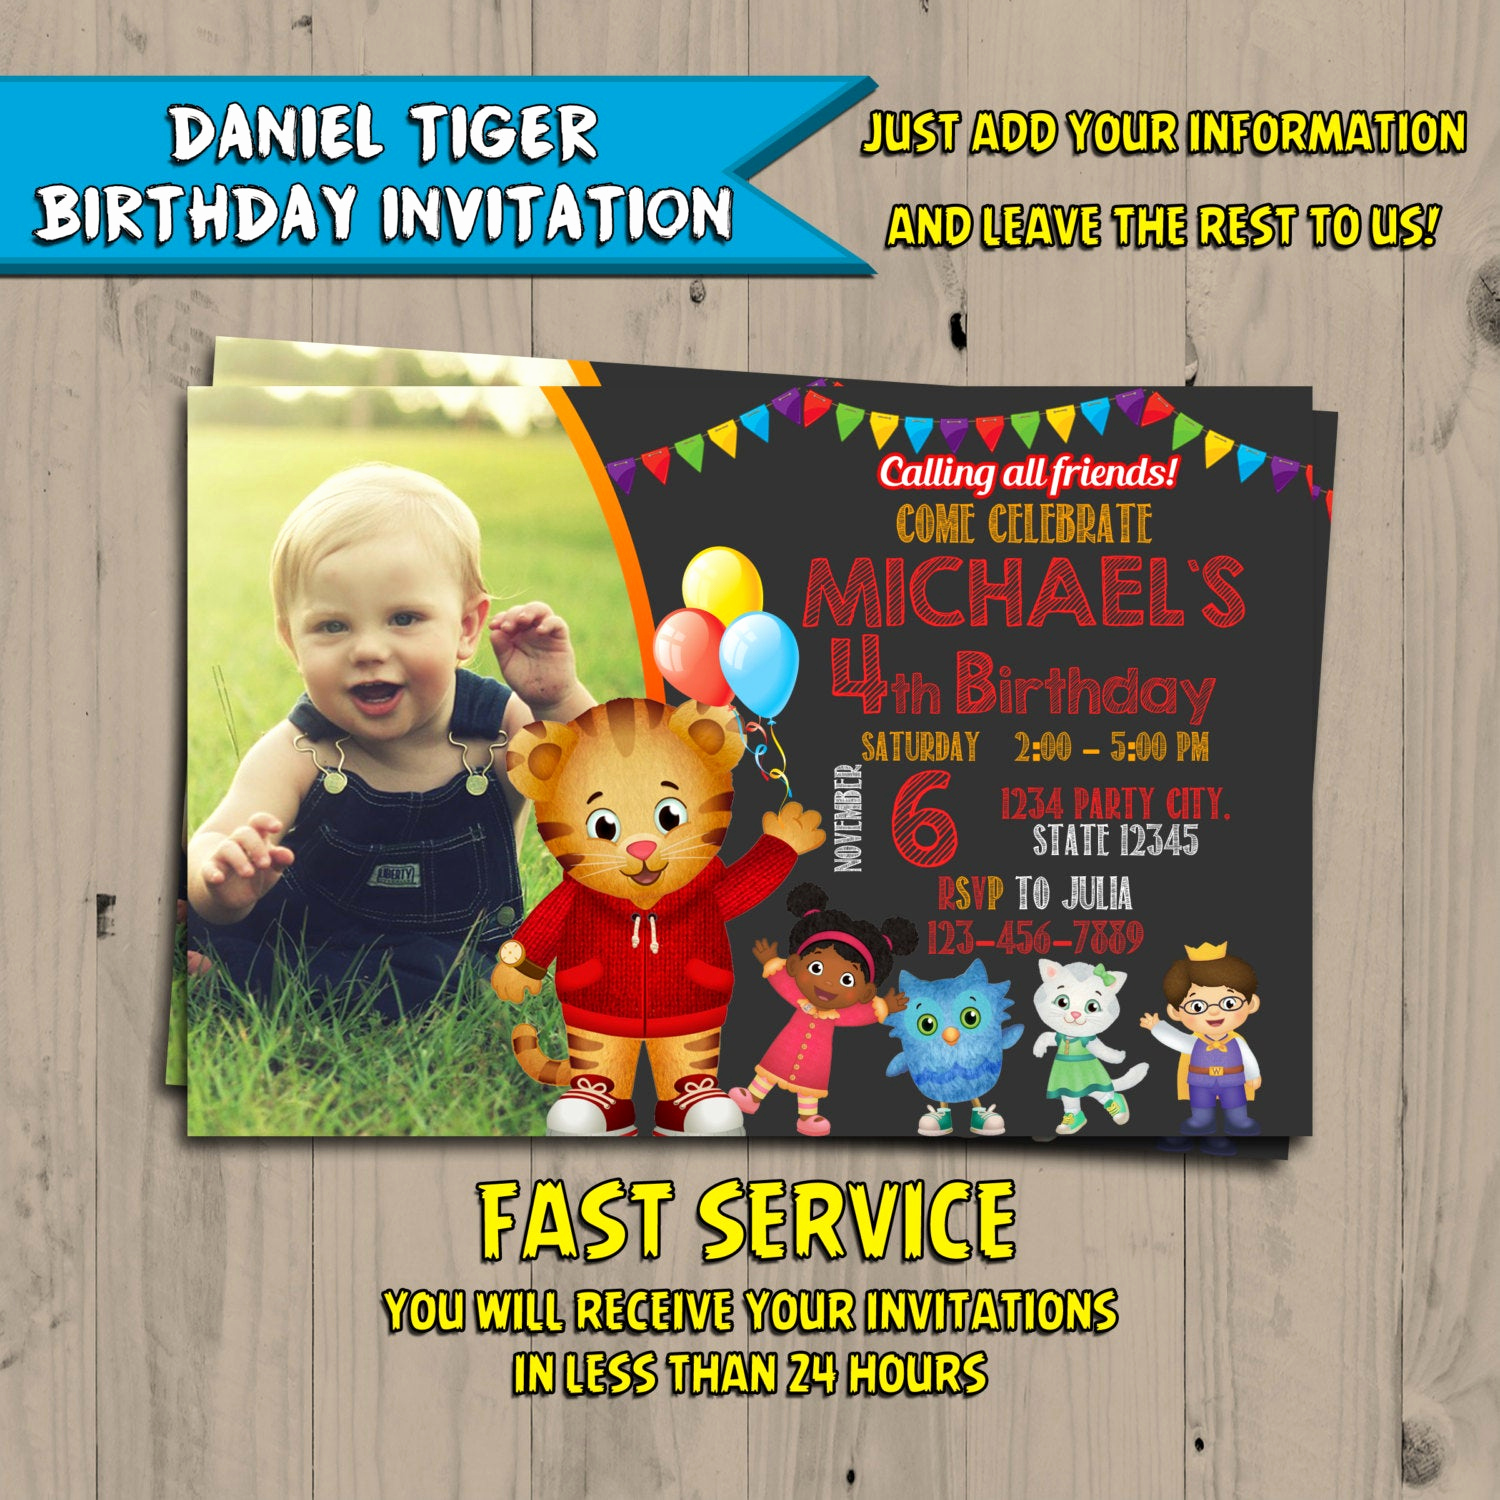 Daniel Tiger Birthday Invitation Best Of Daniel Tiger Invitation Chalkboard Daniel Tiger Birthday